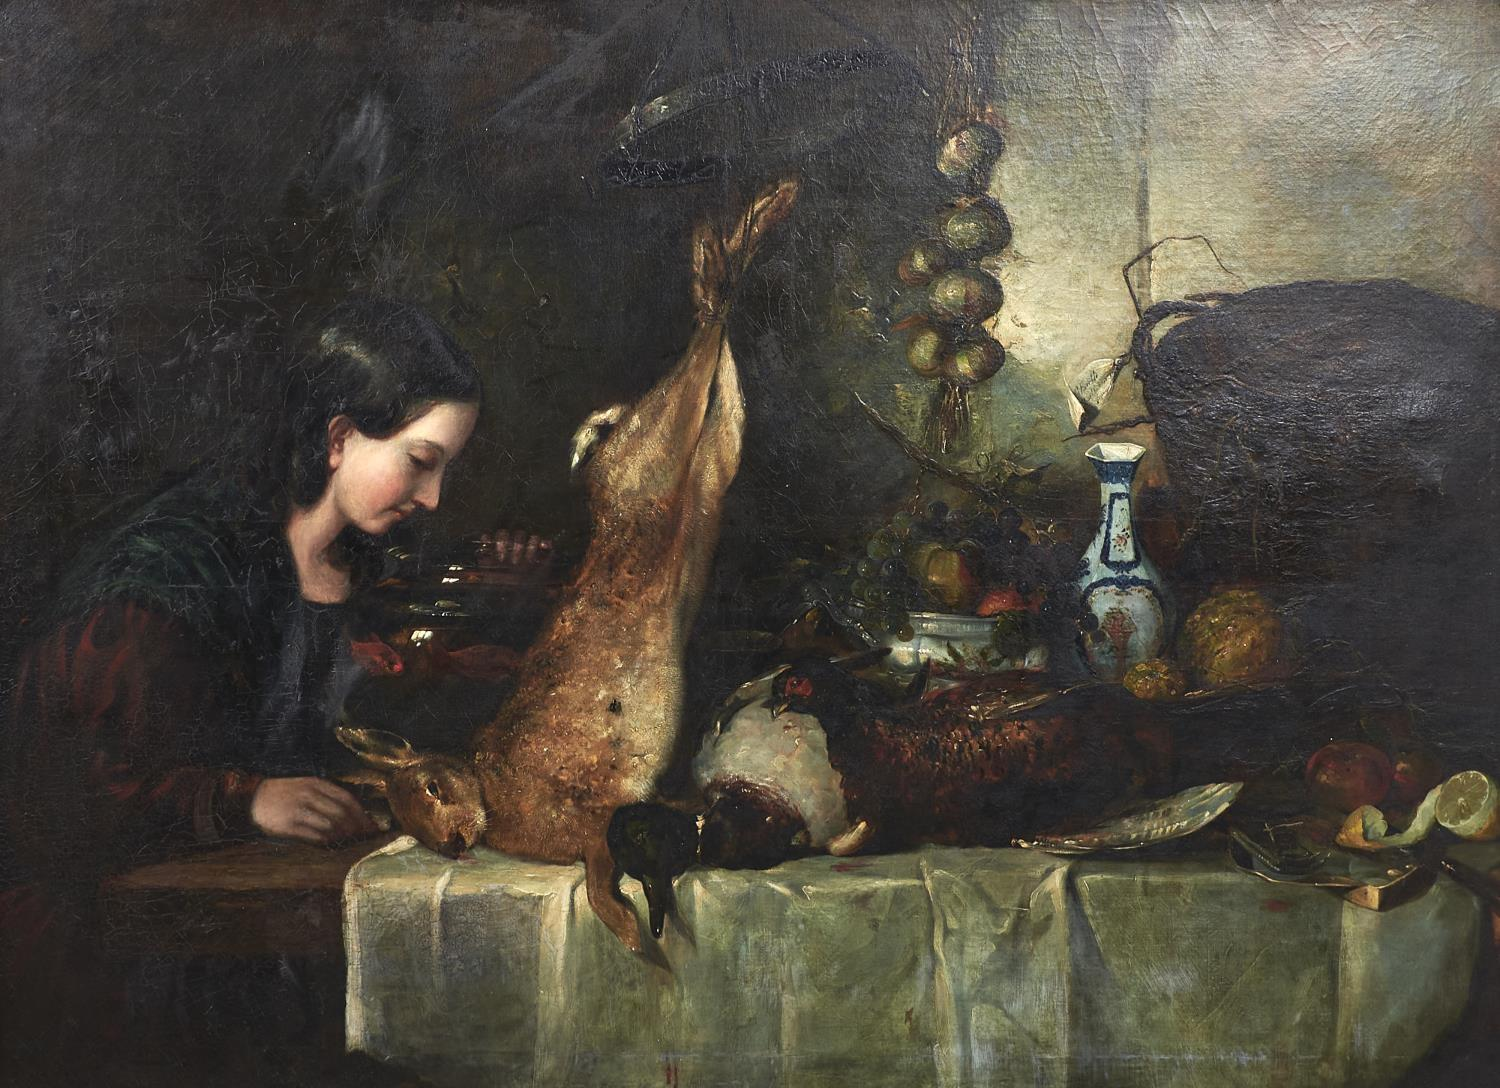 CHARLES HEATH (1785-1848) - WOMAN SEATED AT A TABLE WITH DEAD GAME, A STRING OF ONIONS, FRUIT AND